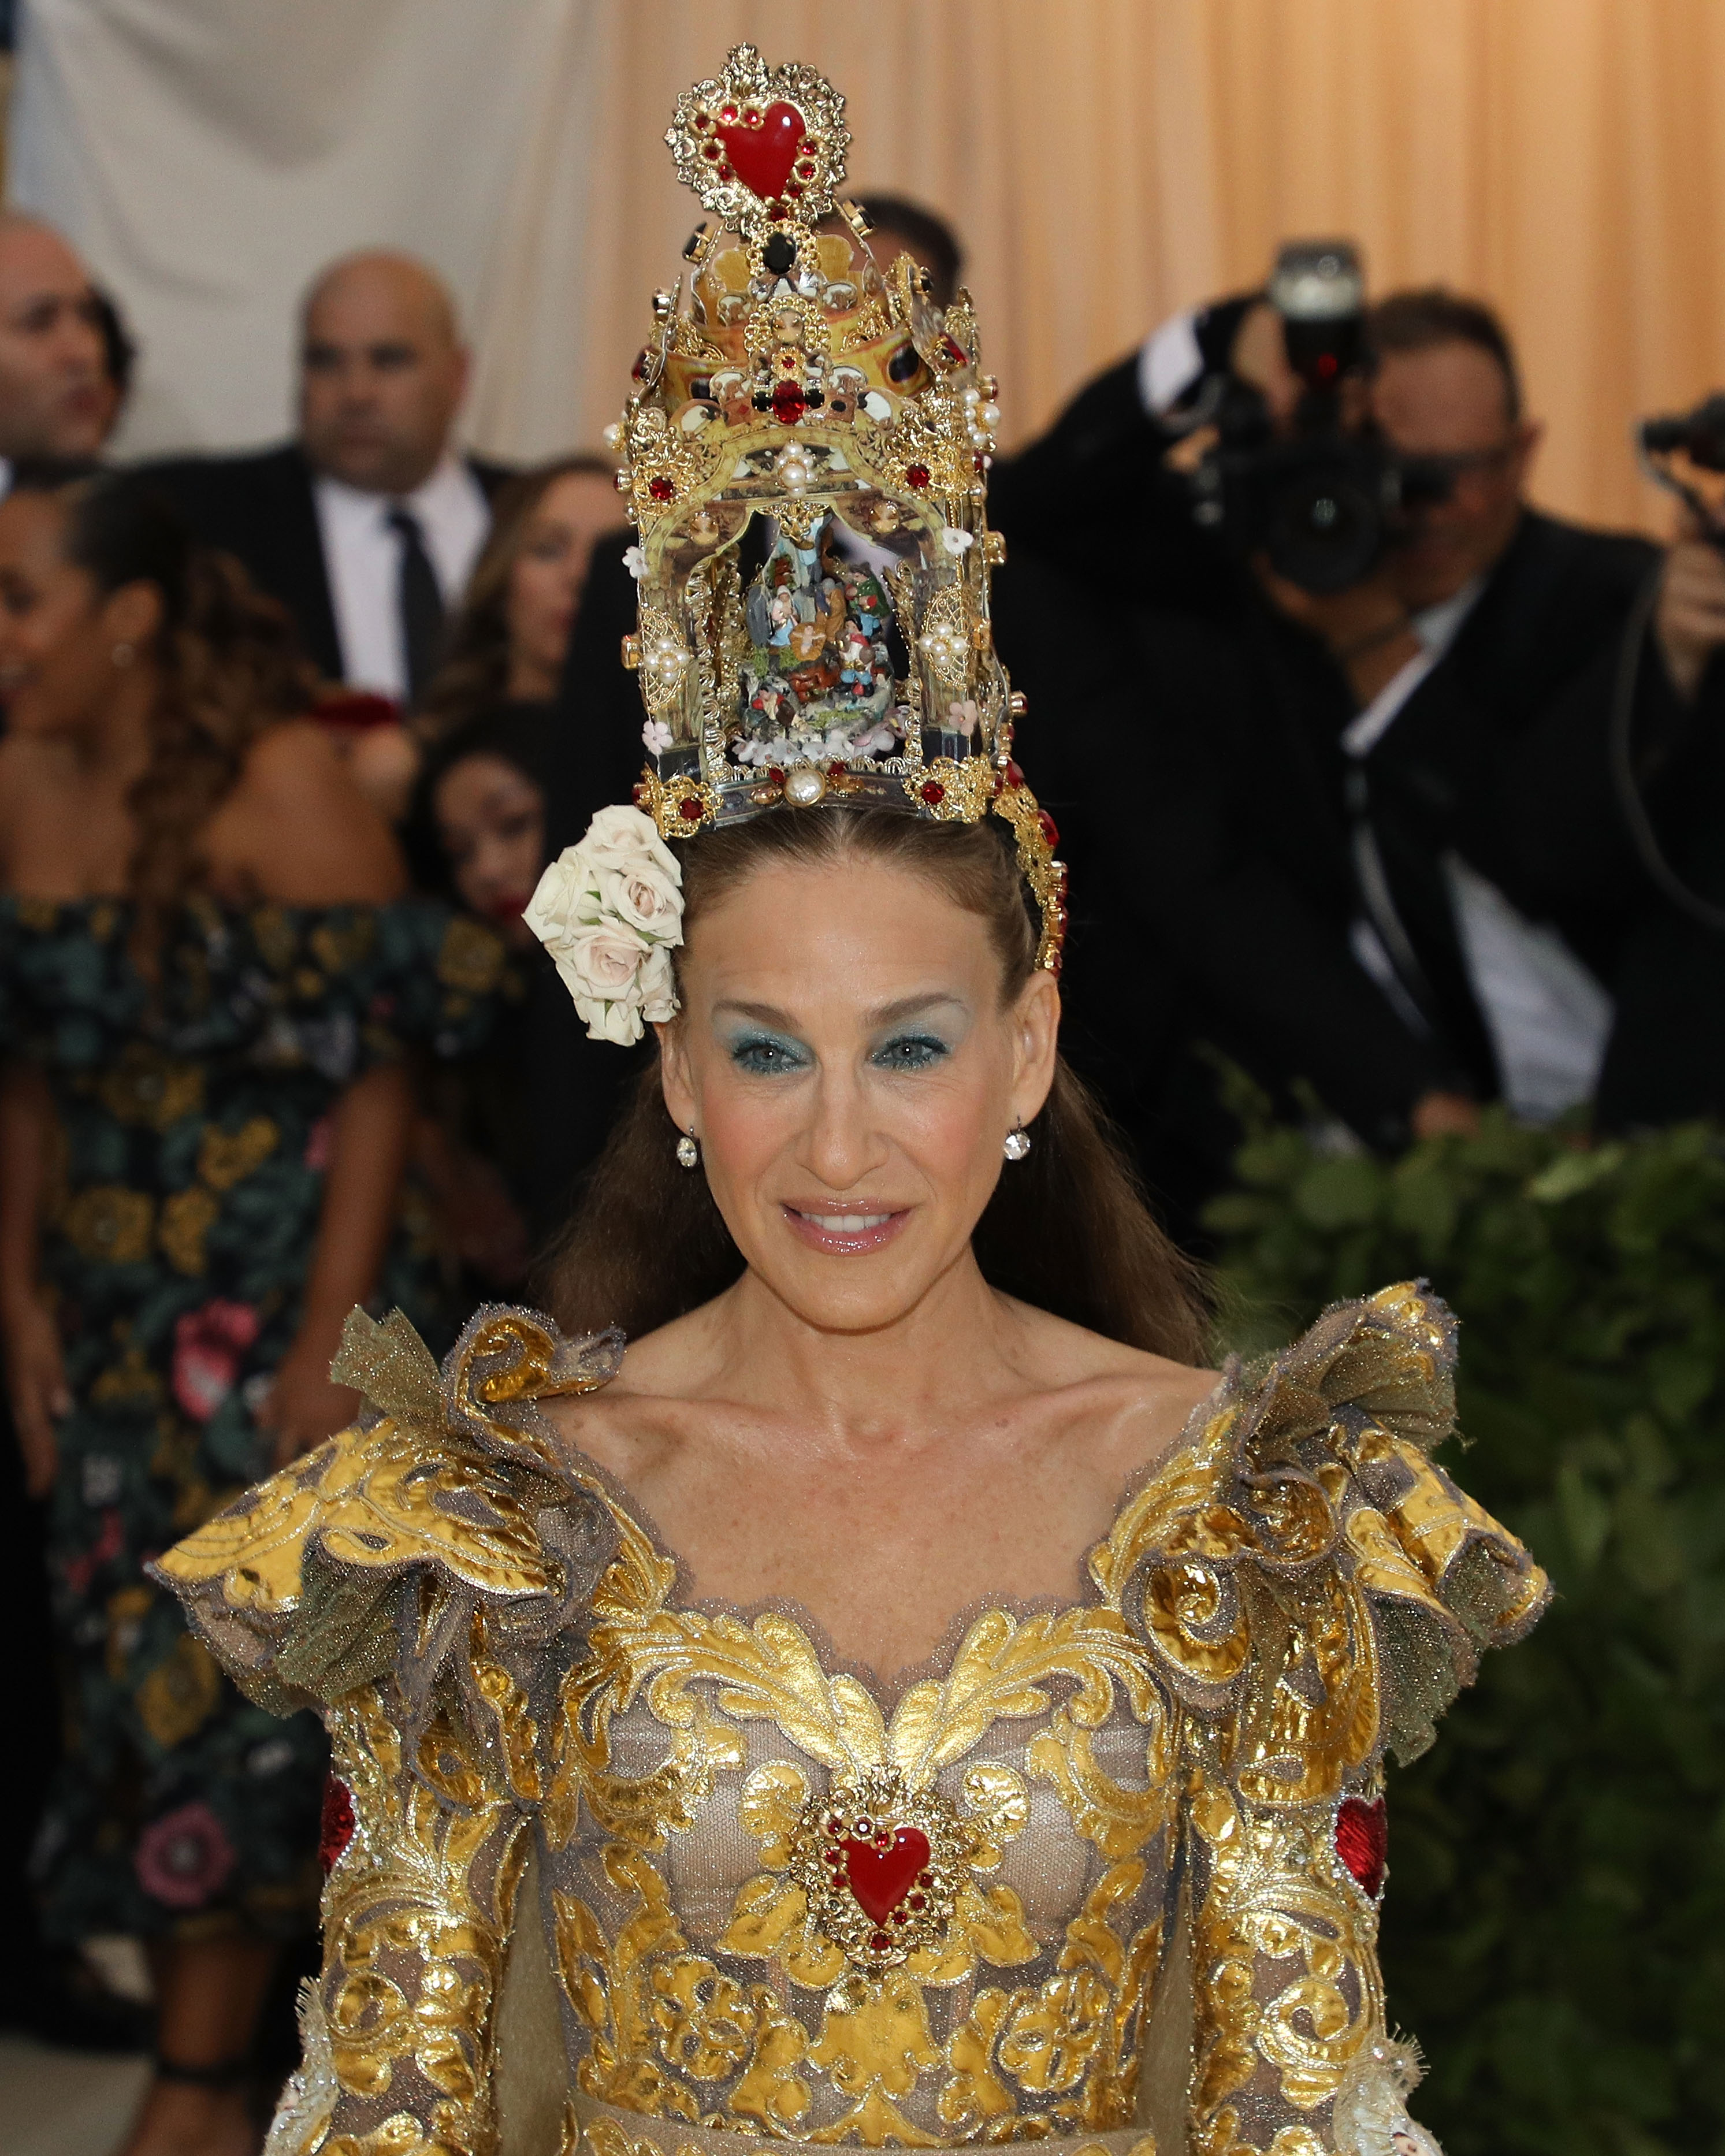 Stories Of Met Gala's Past: The Many Questions We Had ...